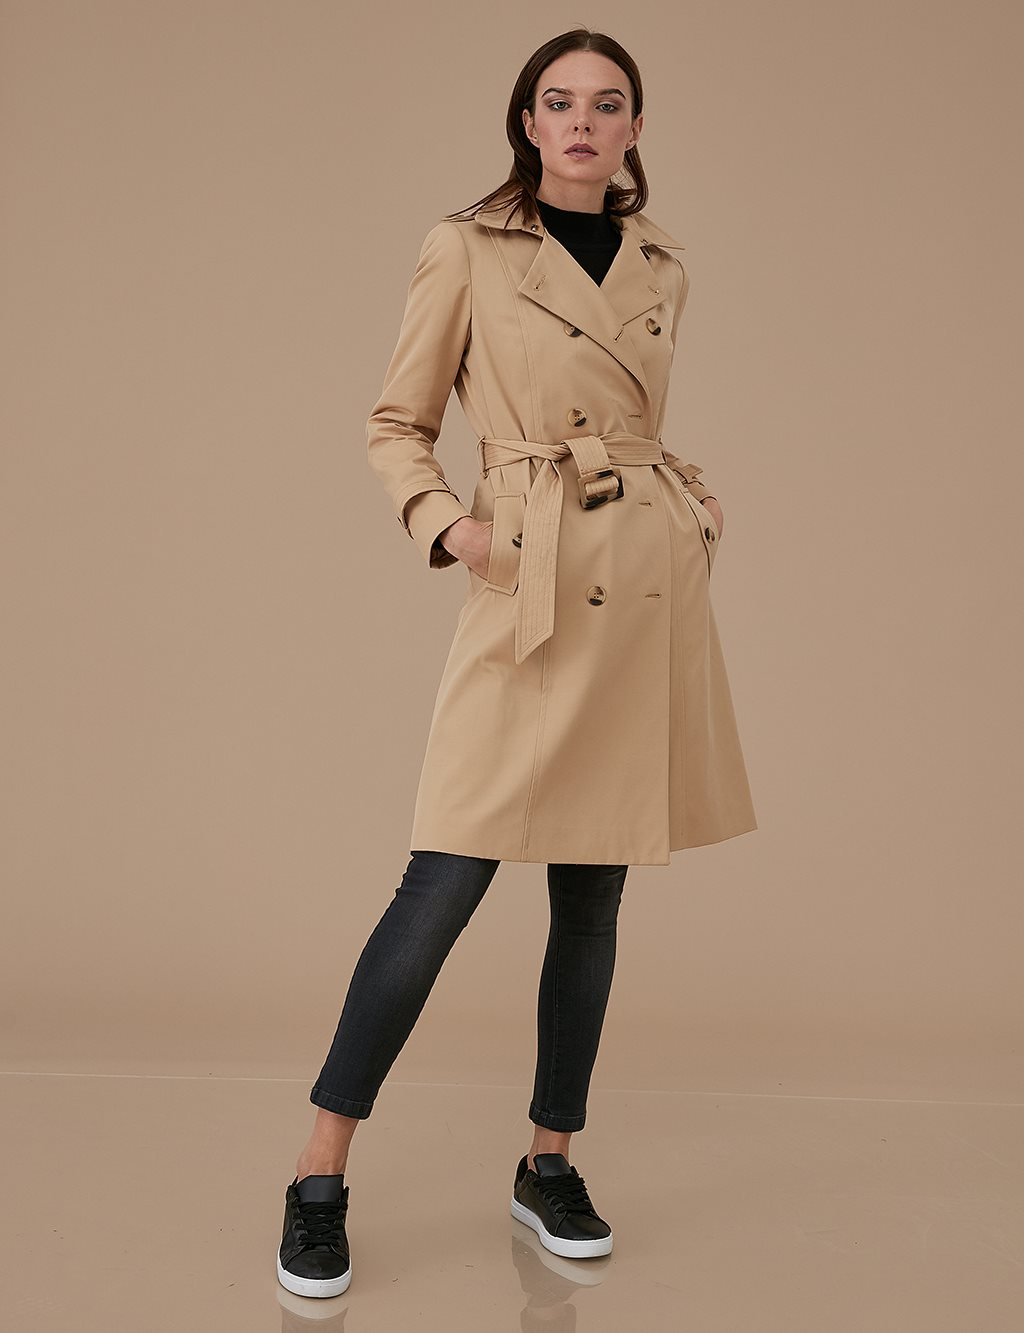 Classic Trenchcoat A9 14040 Beige